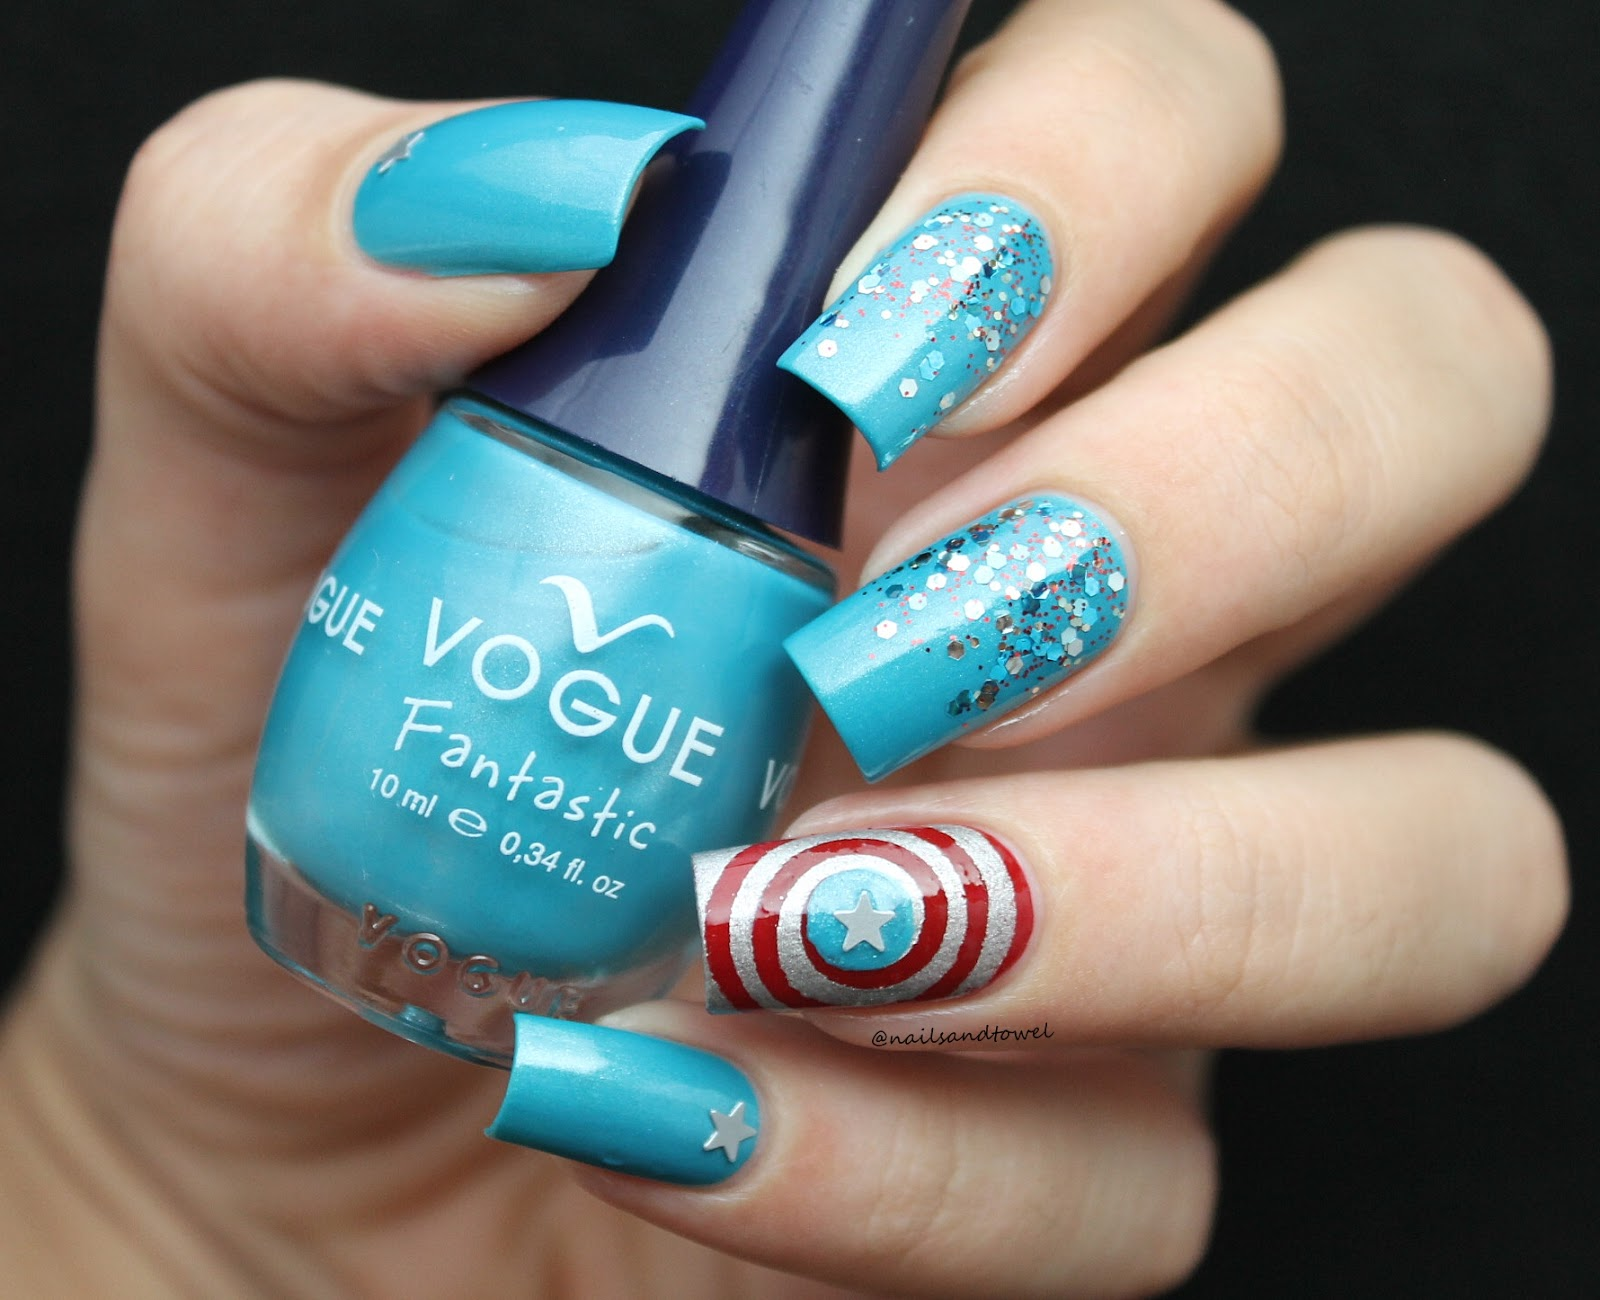 My Nail Art Journal: Captain America Inspired Nails